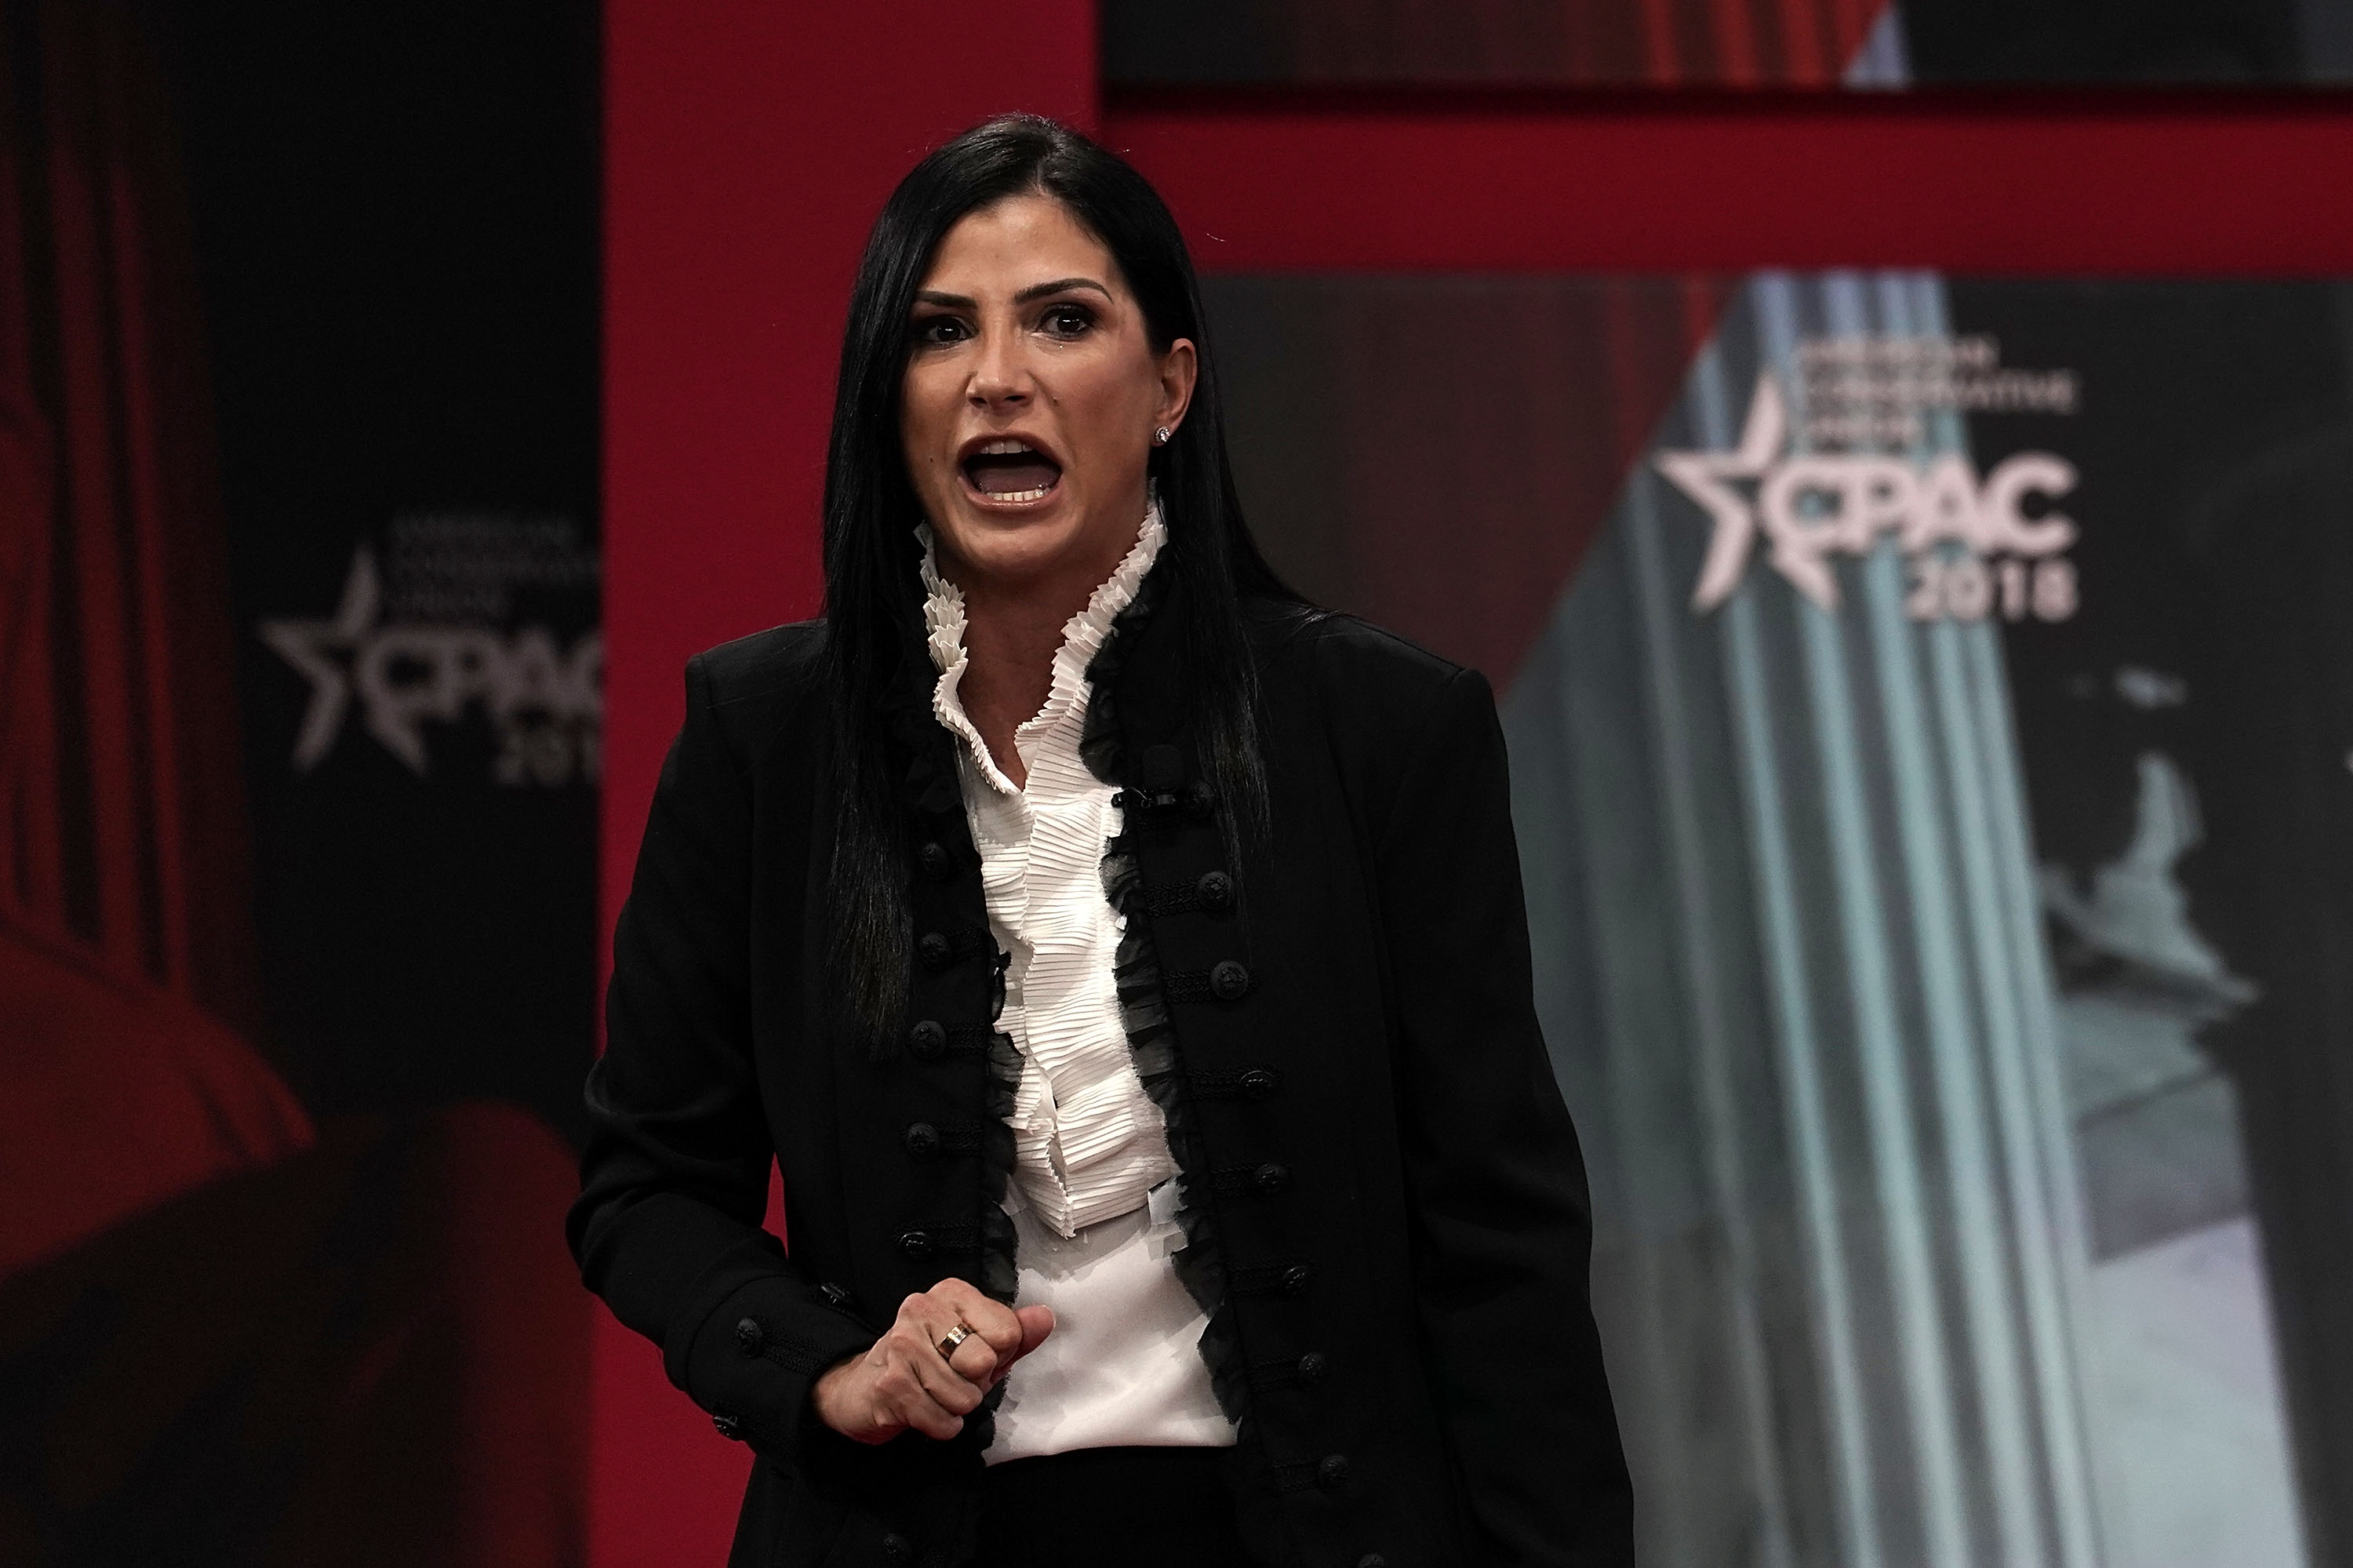 National Rifle Association (NRA) spokeswoman Dana Loesch speaks during CPAC 2018 February 22, 2018 in National Harbor, Maryland. The American Conservative Union hosted its annual Conservative Political Action Conference to discuss conservative agenda.